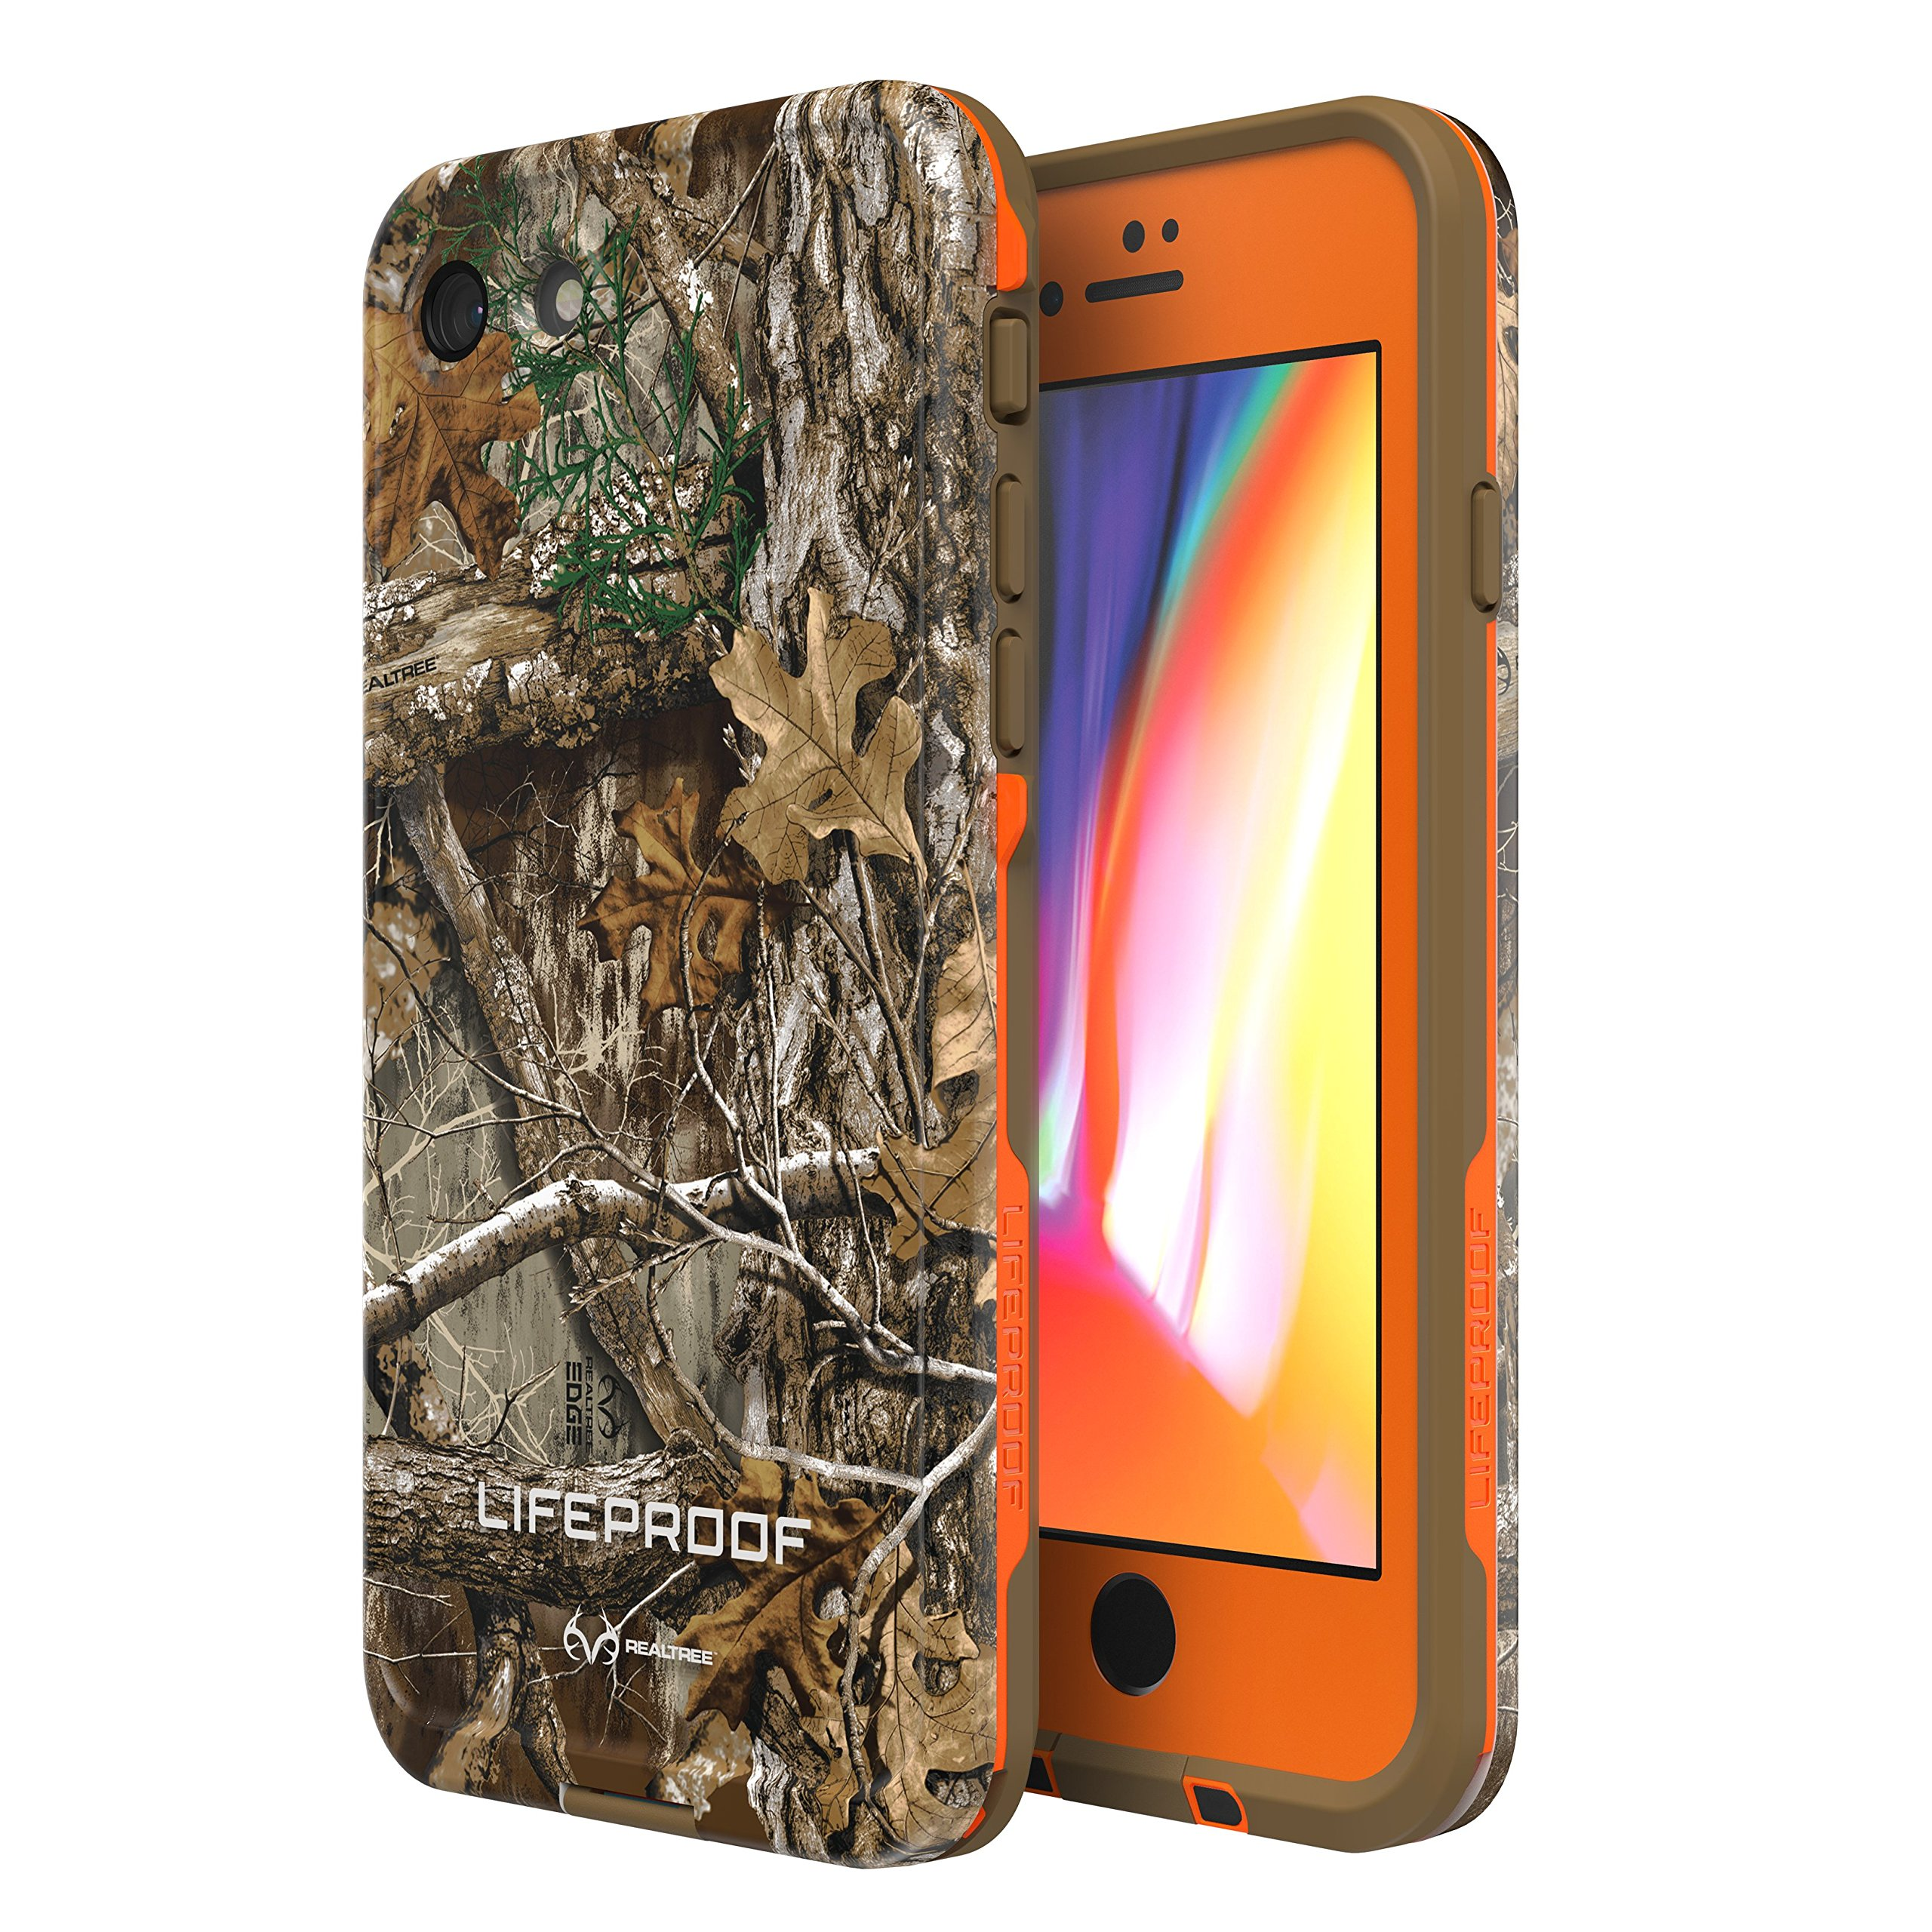 Lifeproof FRĒ SERIES Waterproof Case for iPhone 8 & 7 (ONLY) - Retail Packaging - (BLAZE ORANGE/DARK FLAT EARTH/RT EDGE) by LifeProof